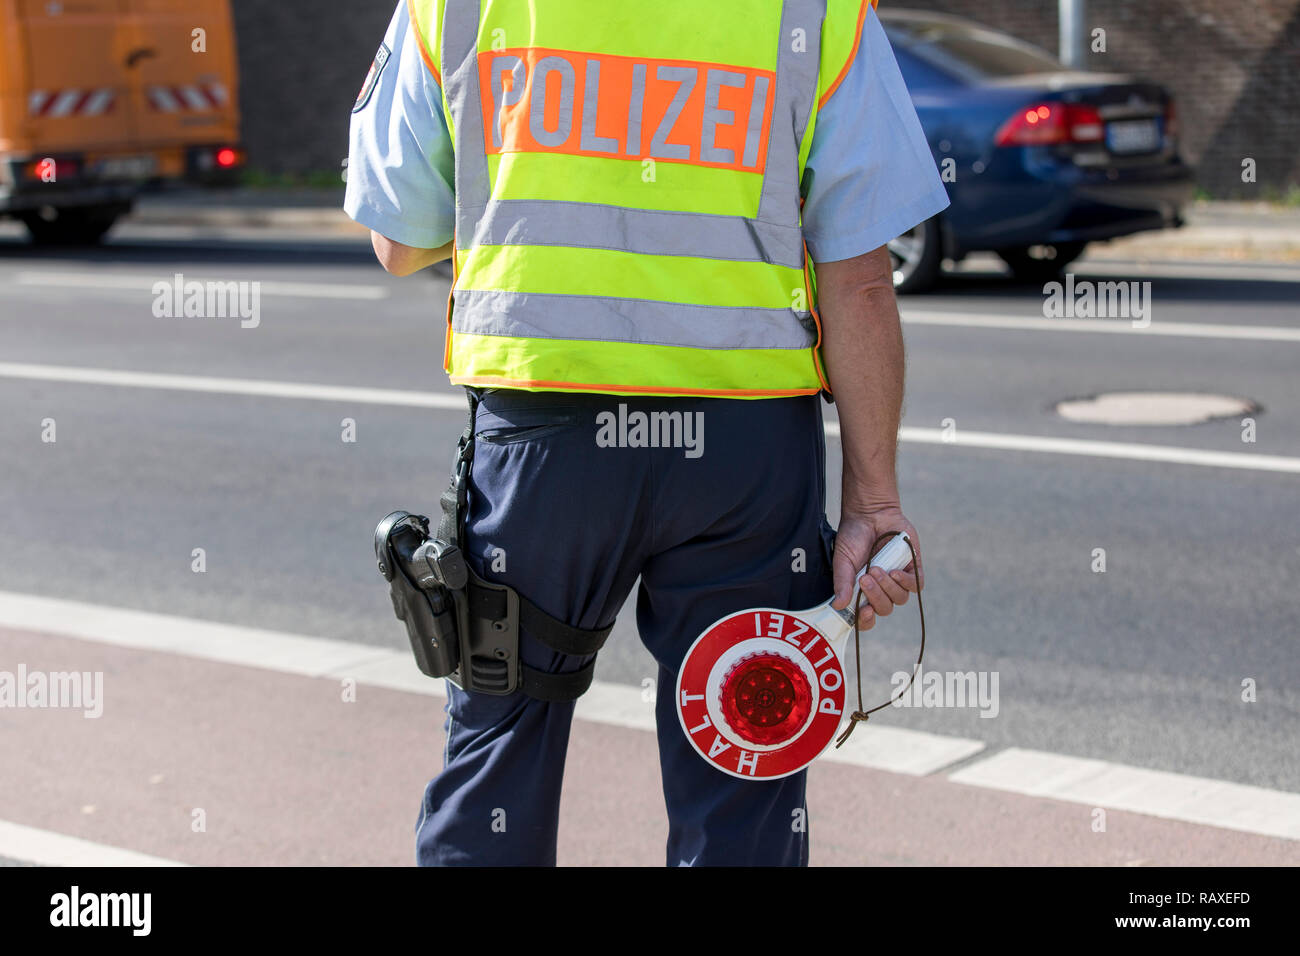 Policeman with yellow safety vest and stopping trowel, during a traffic control, Germany, Stock Photo